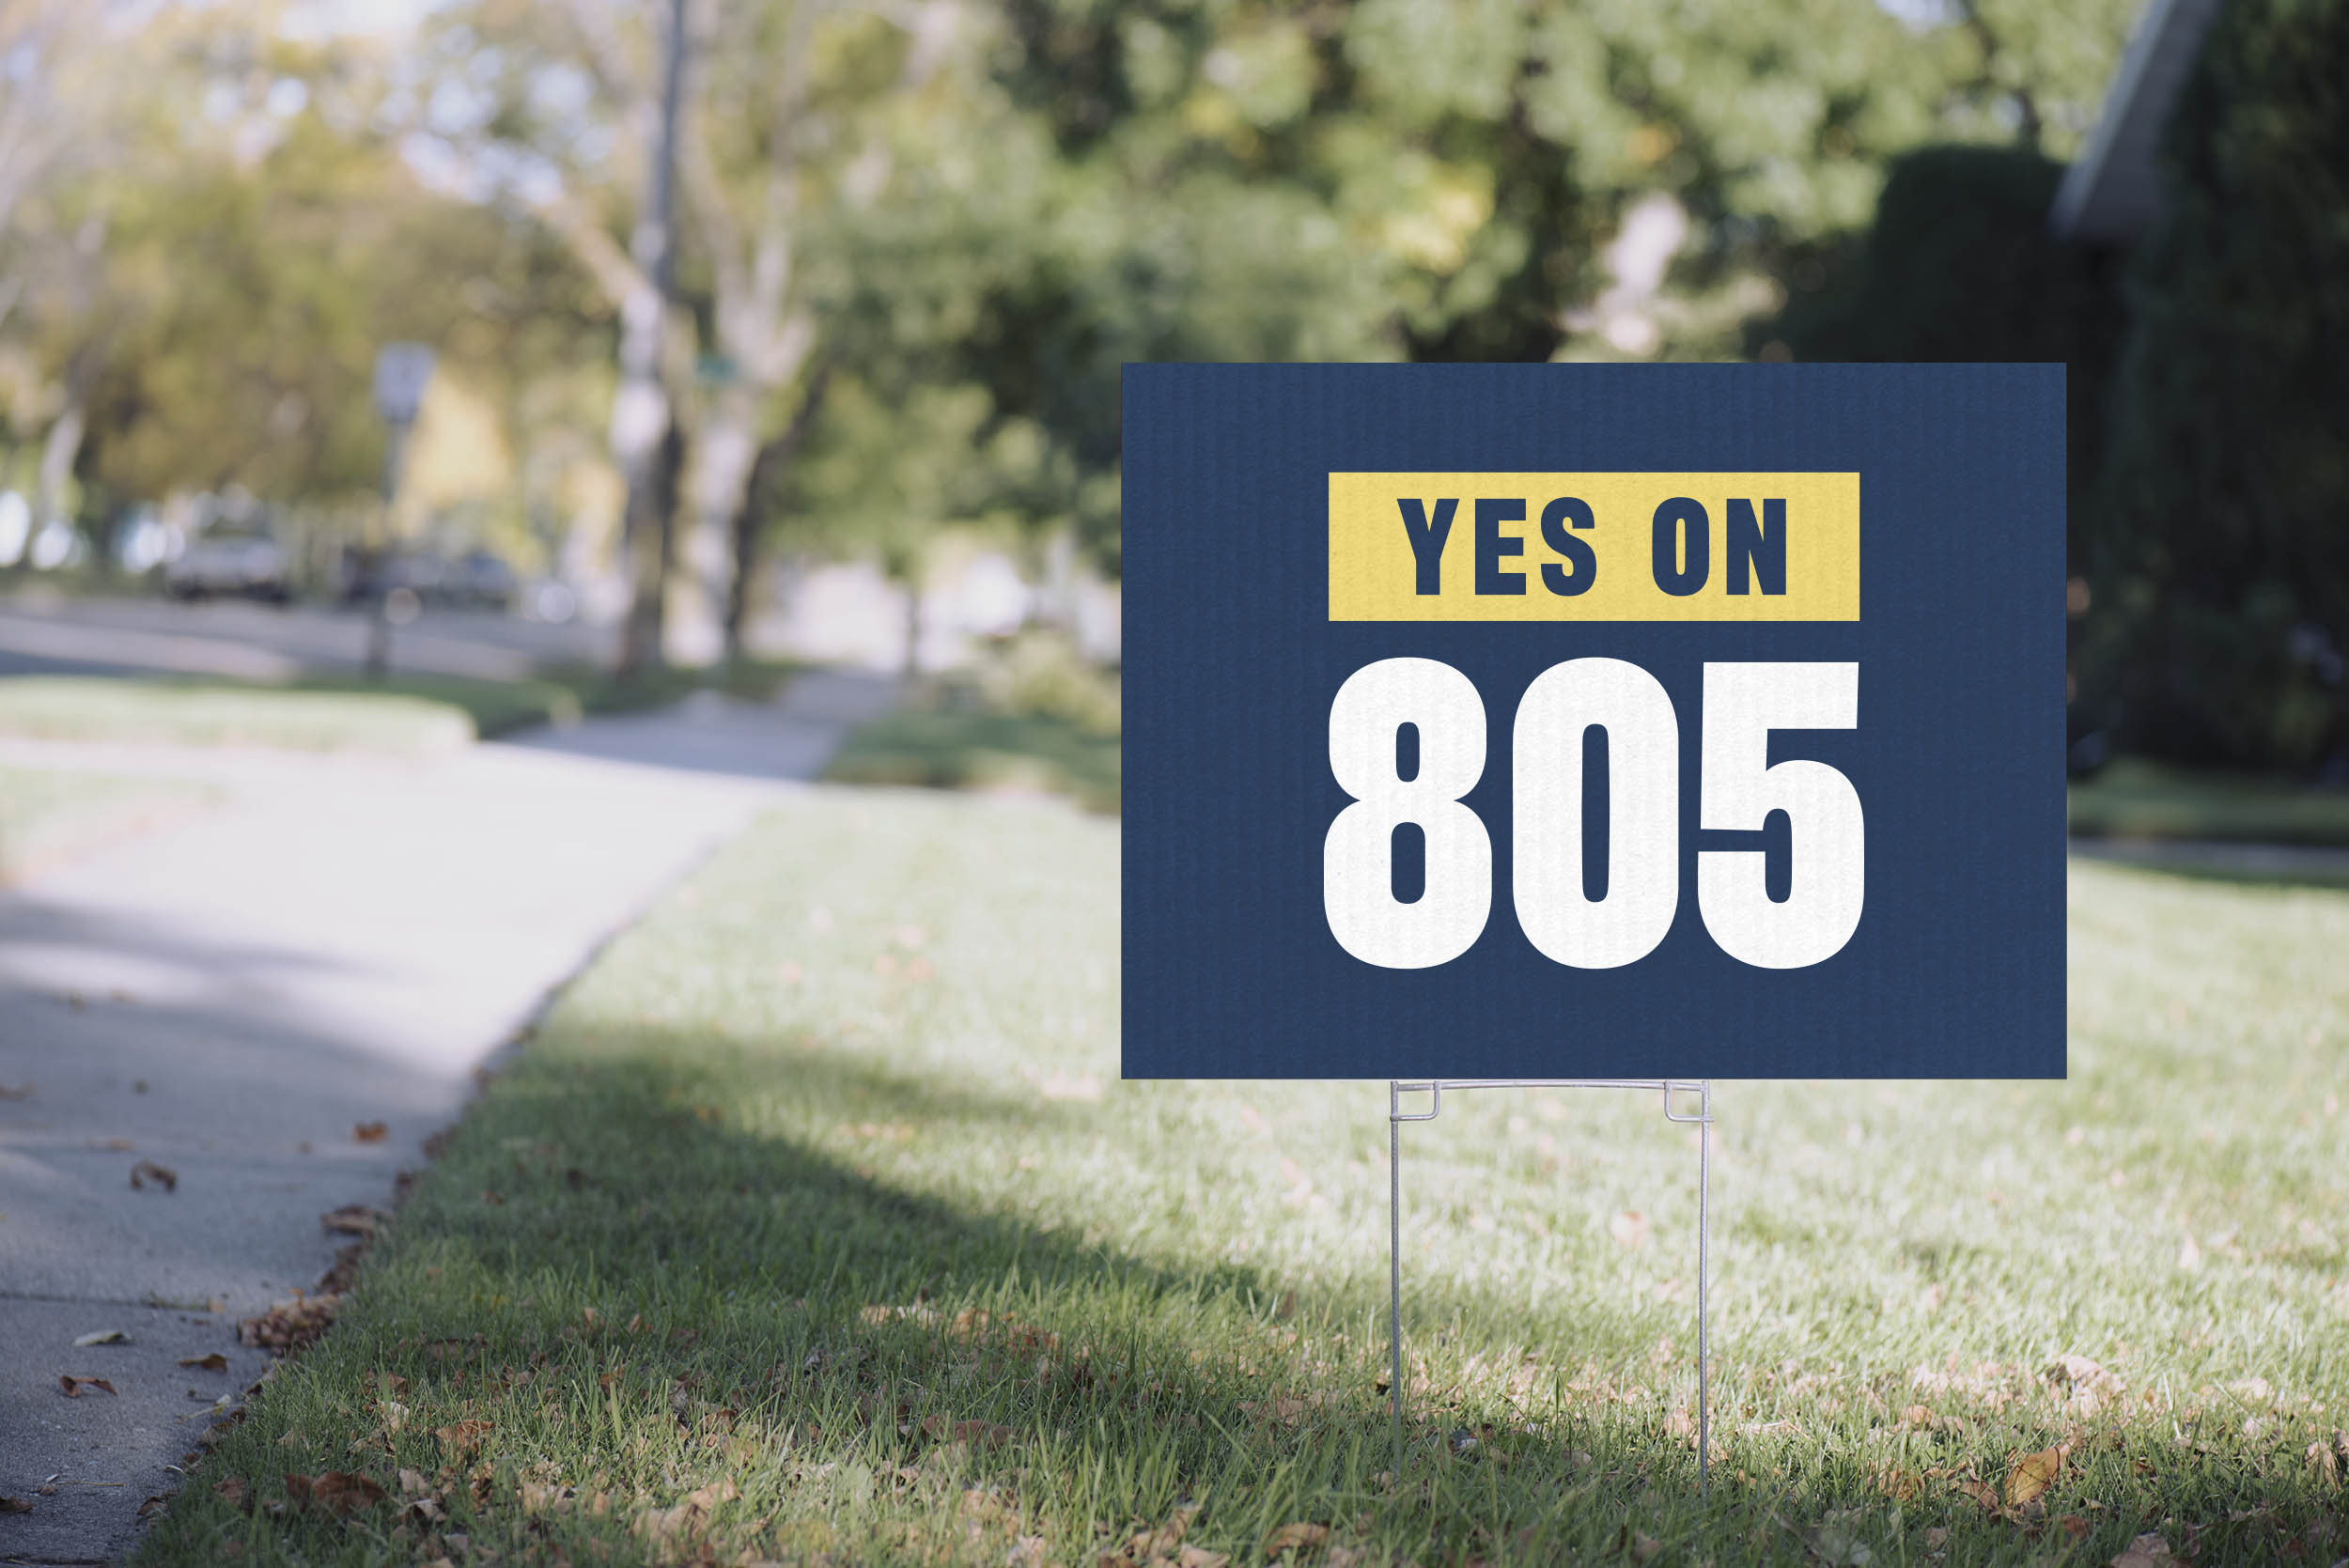 A yard sign for Yes on 805